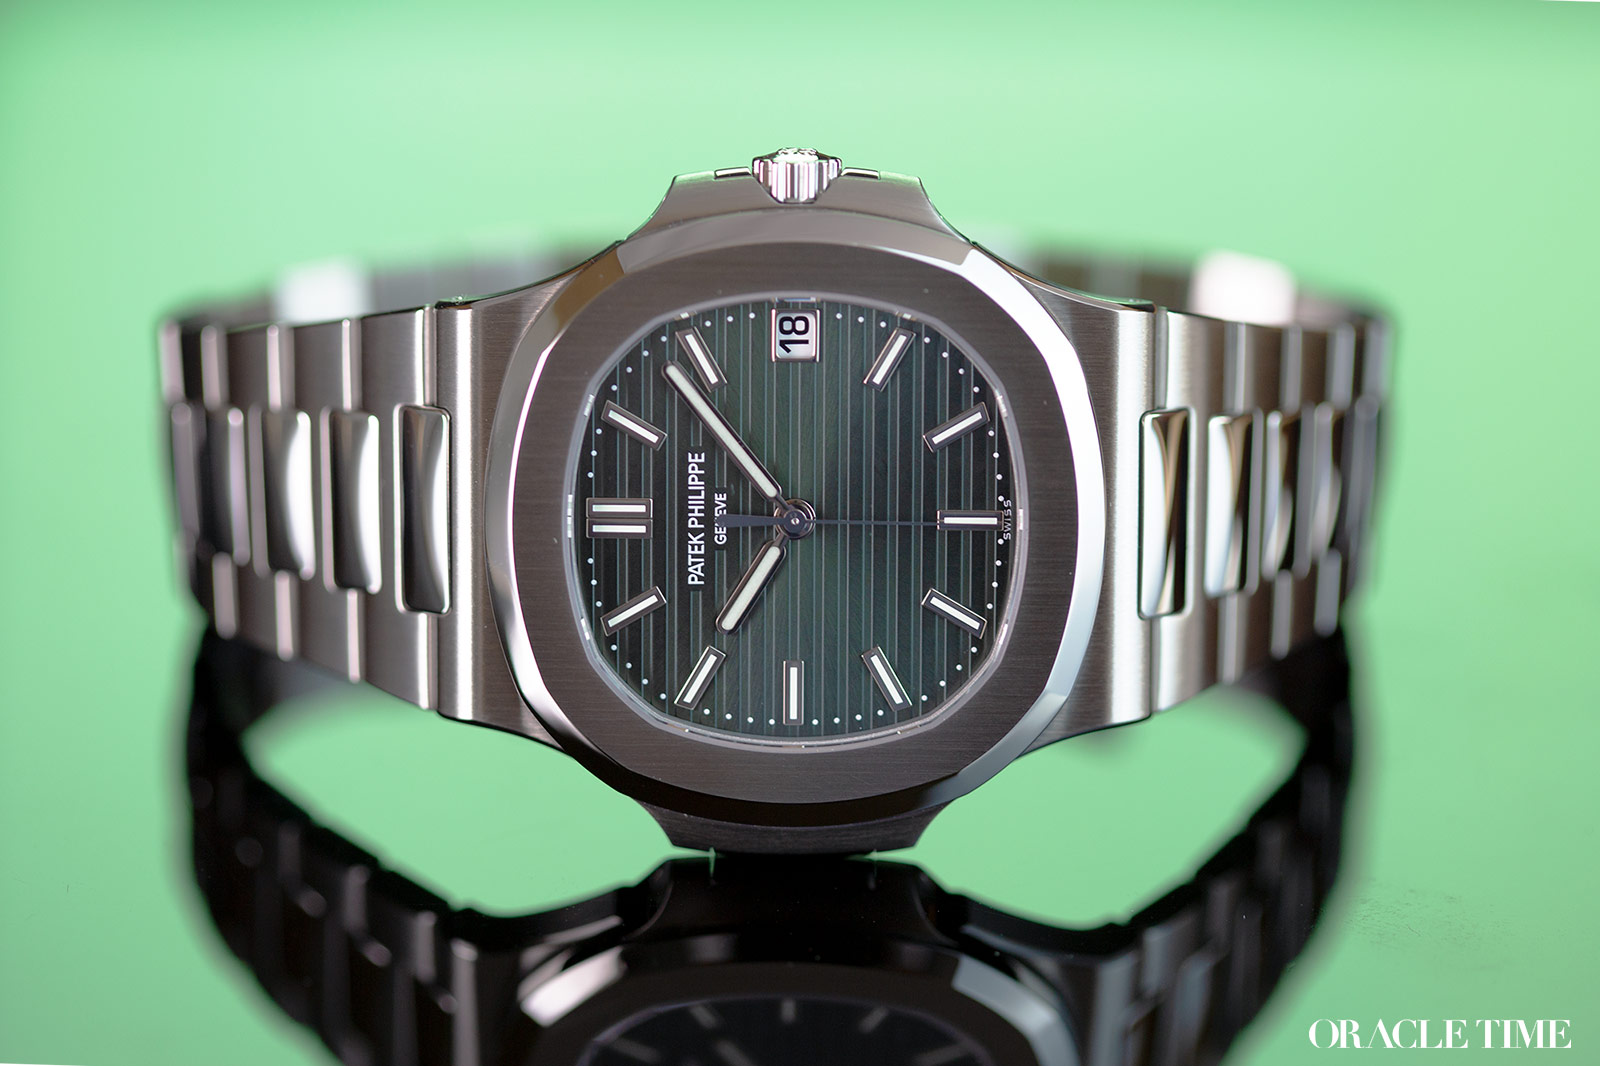 Patek Philippe Nautilus 5711 Olive Green Hands-On